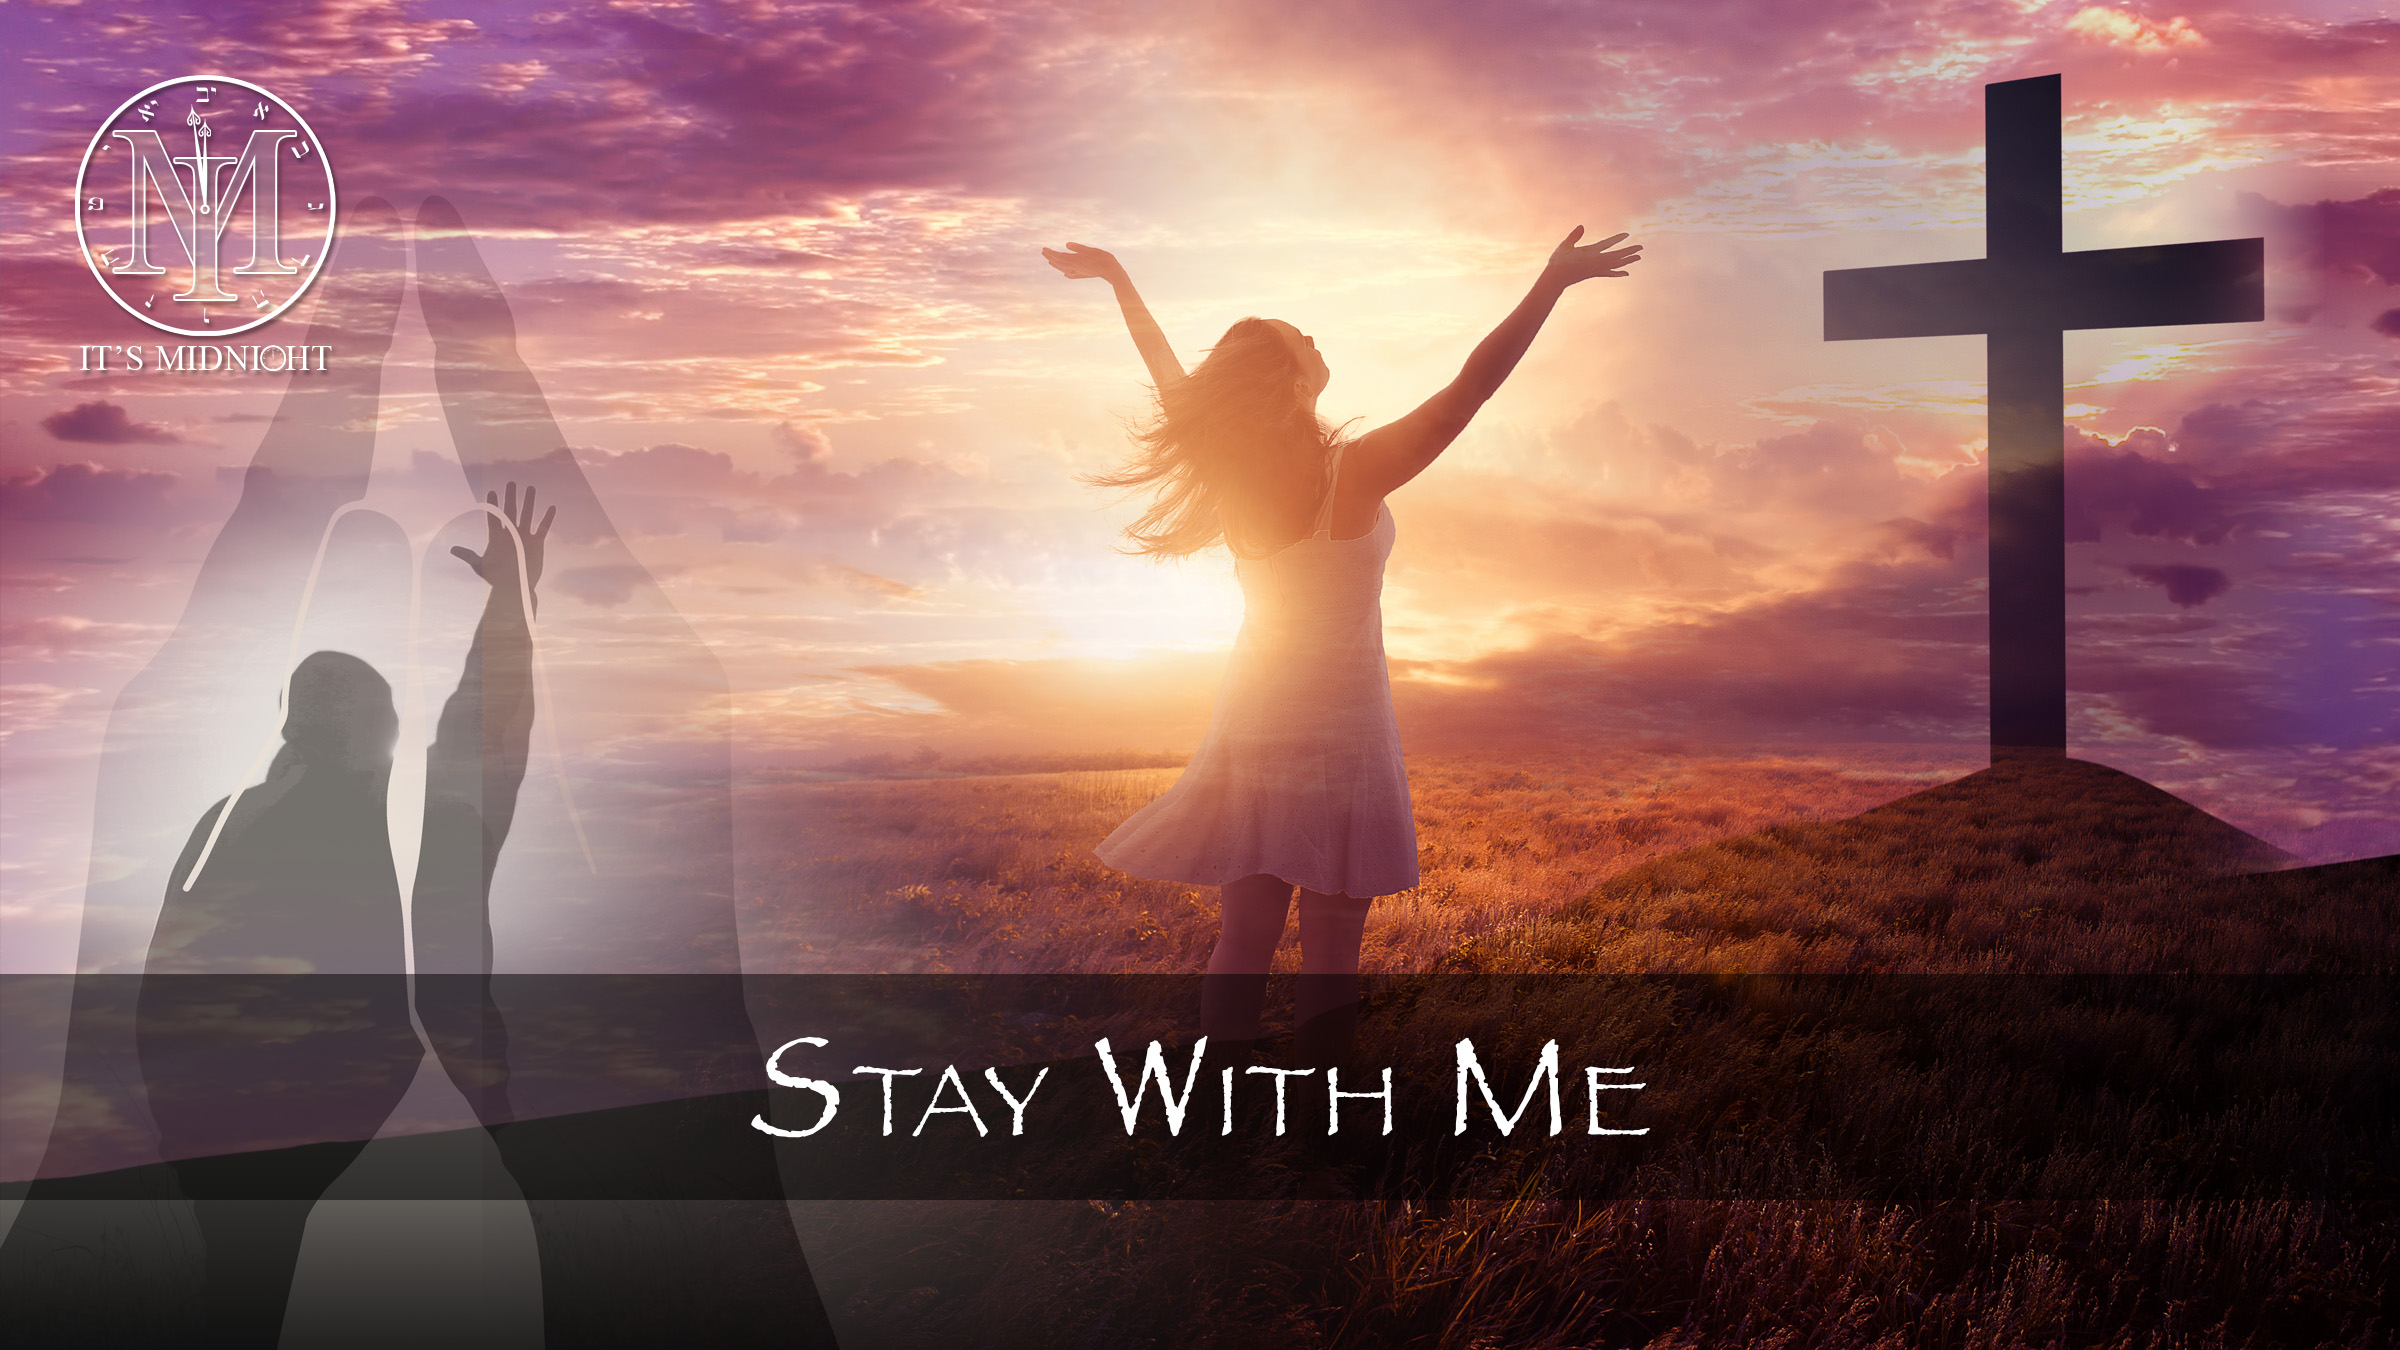 Stay With Me Thumbnail (16x9) for YouTube.jpg